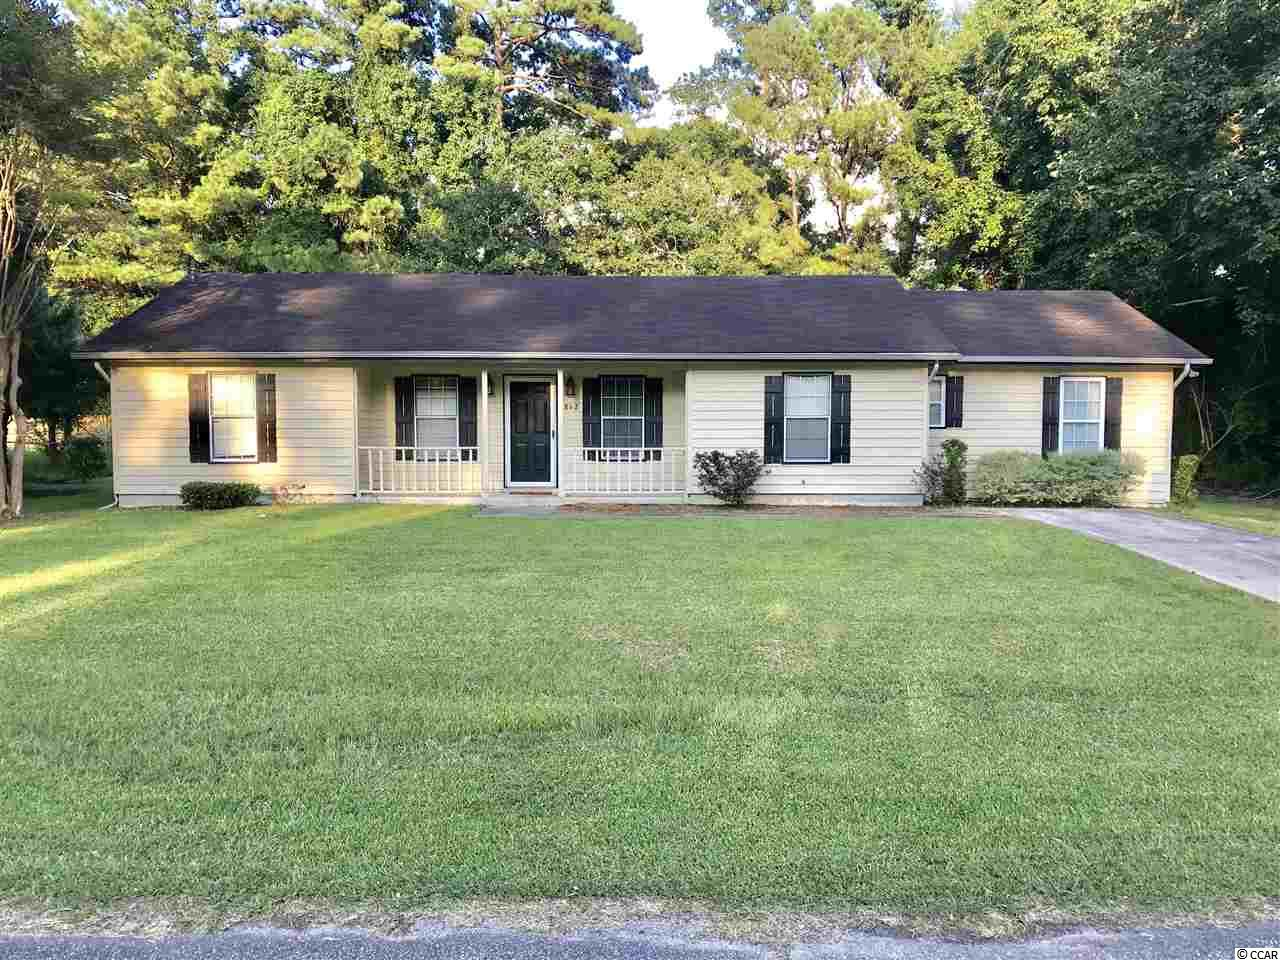 Comfortable 5 bedroom, 3 bath home located in a most sought-after subdivision in Georgetown County with the Kensington Elementary School within walking distance of the house. Local shopping close in also. Completely remodeled 3 years ago.